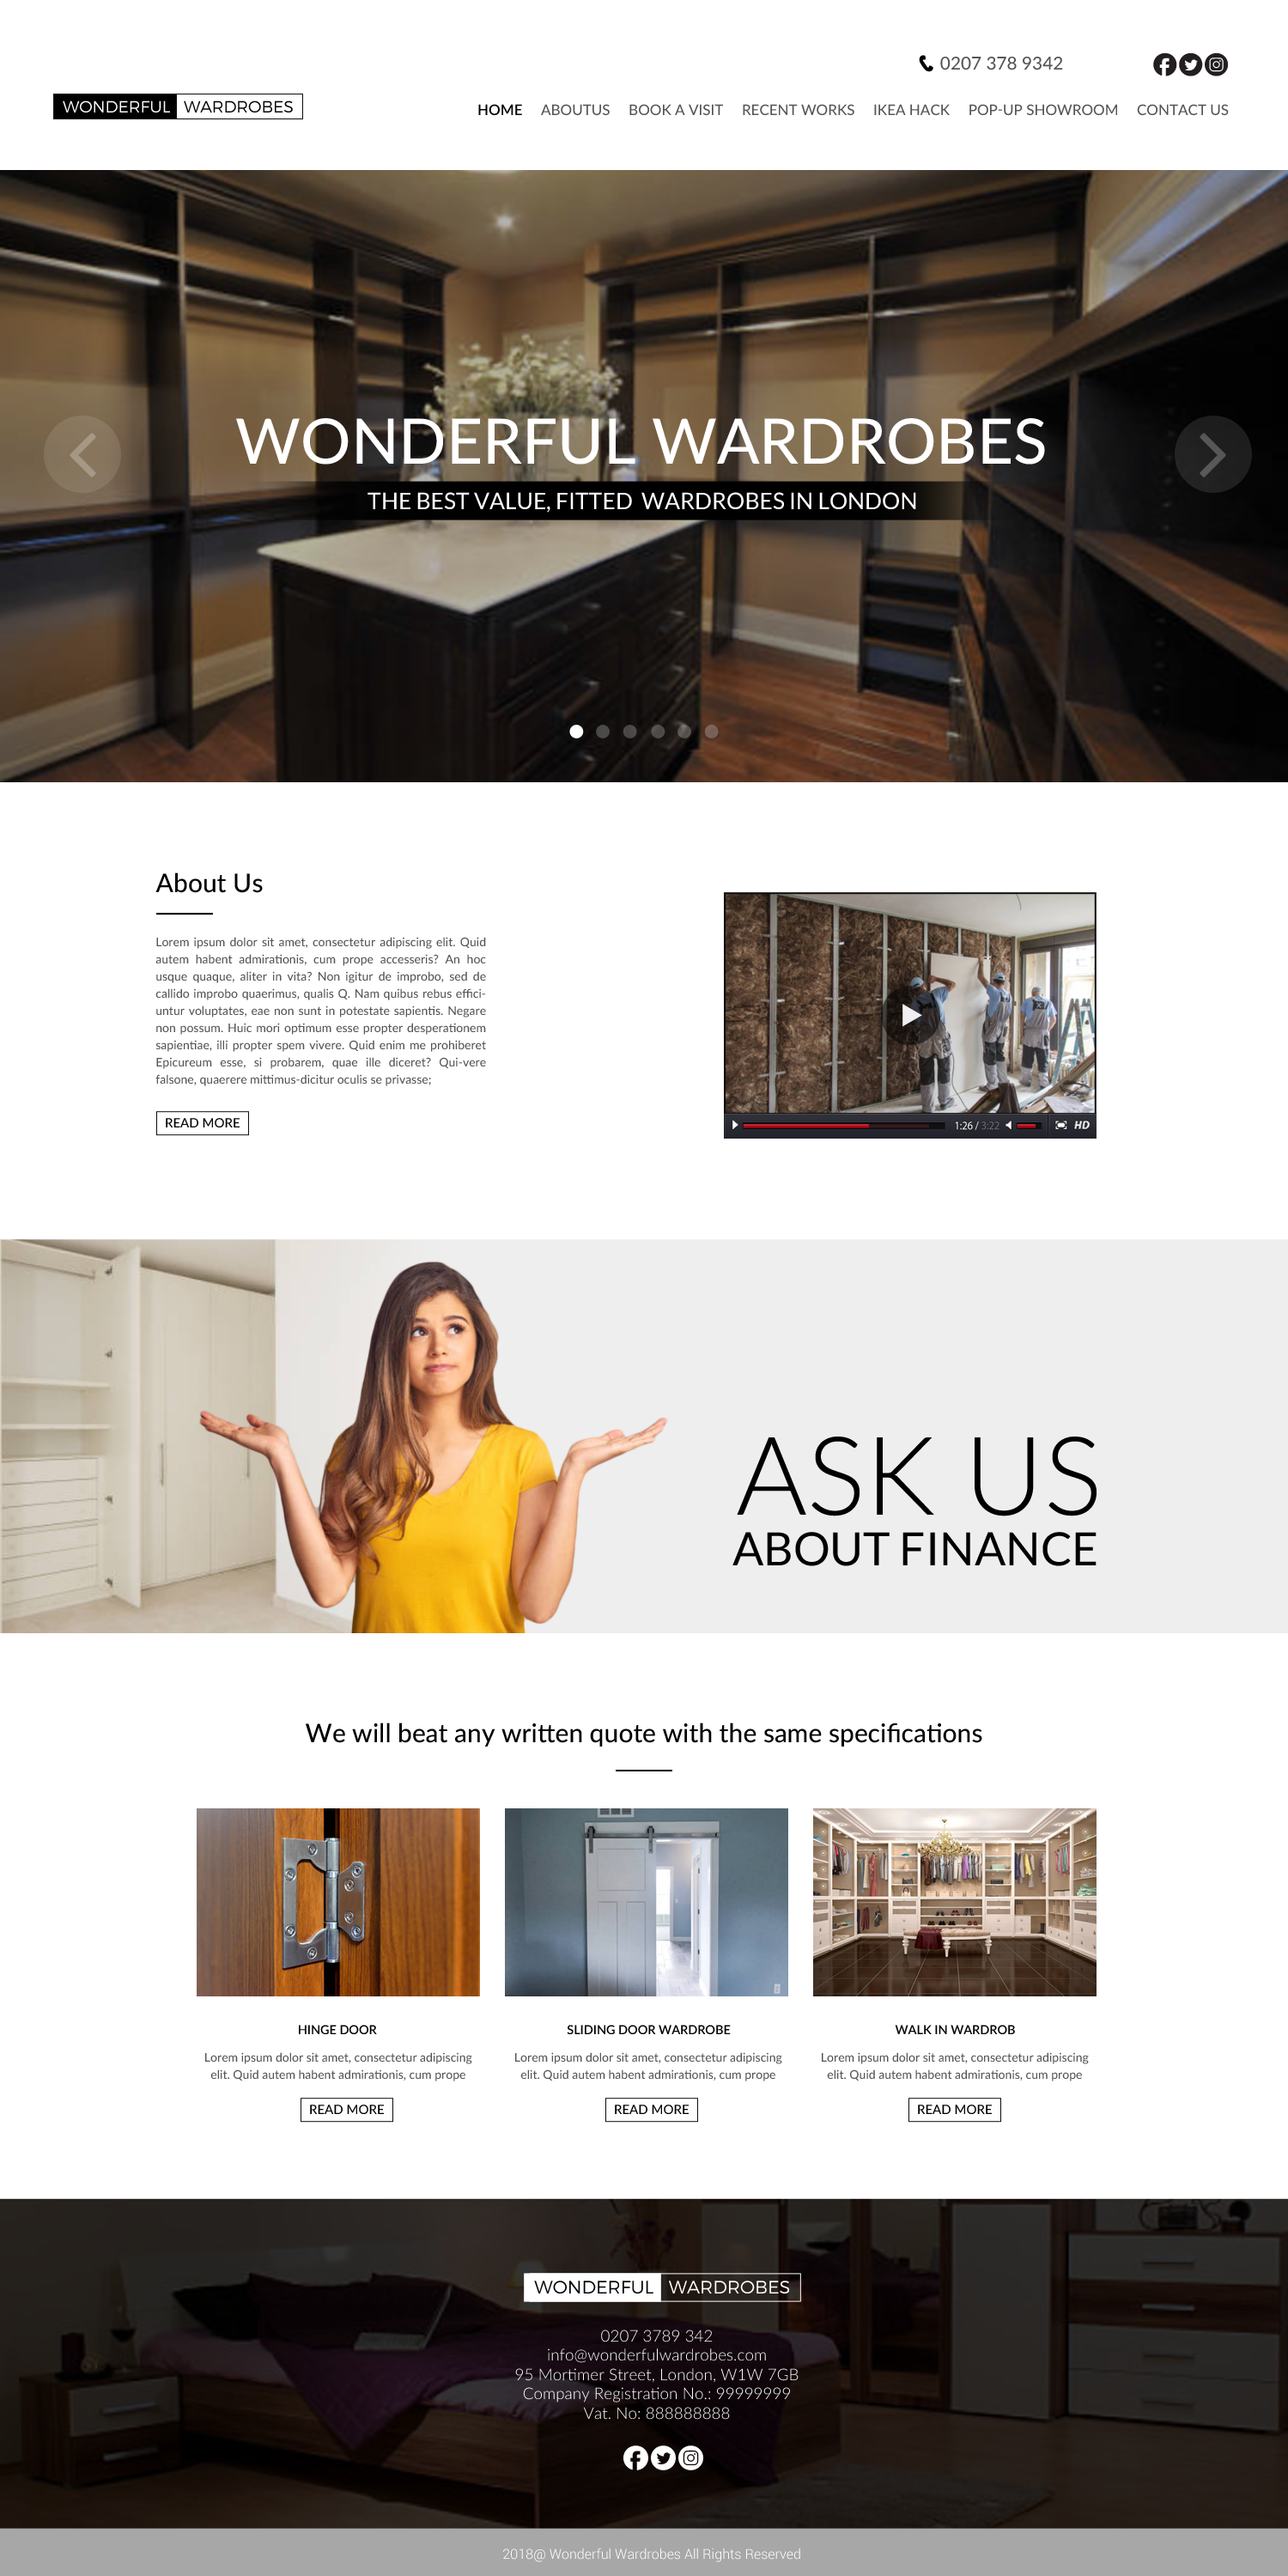 Elegant, Playful Web Design for a Company by chandrayaan